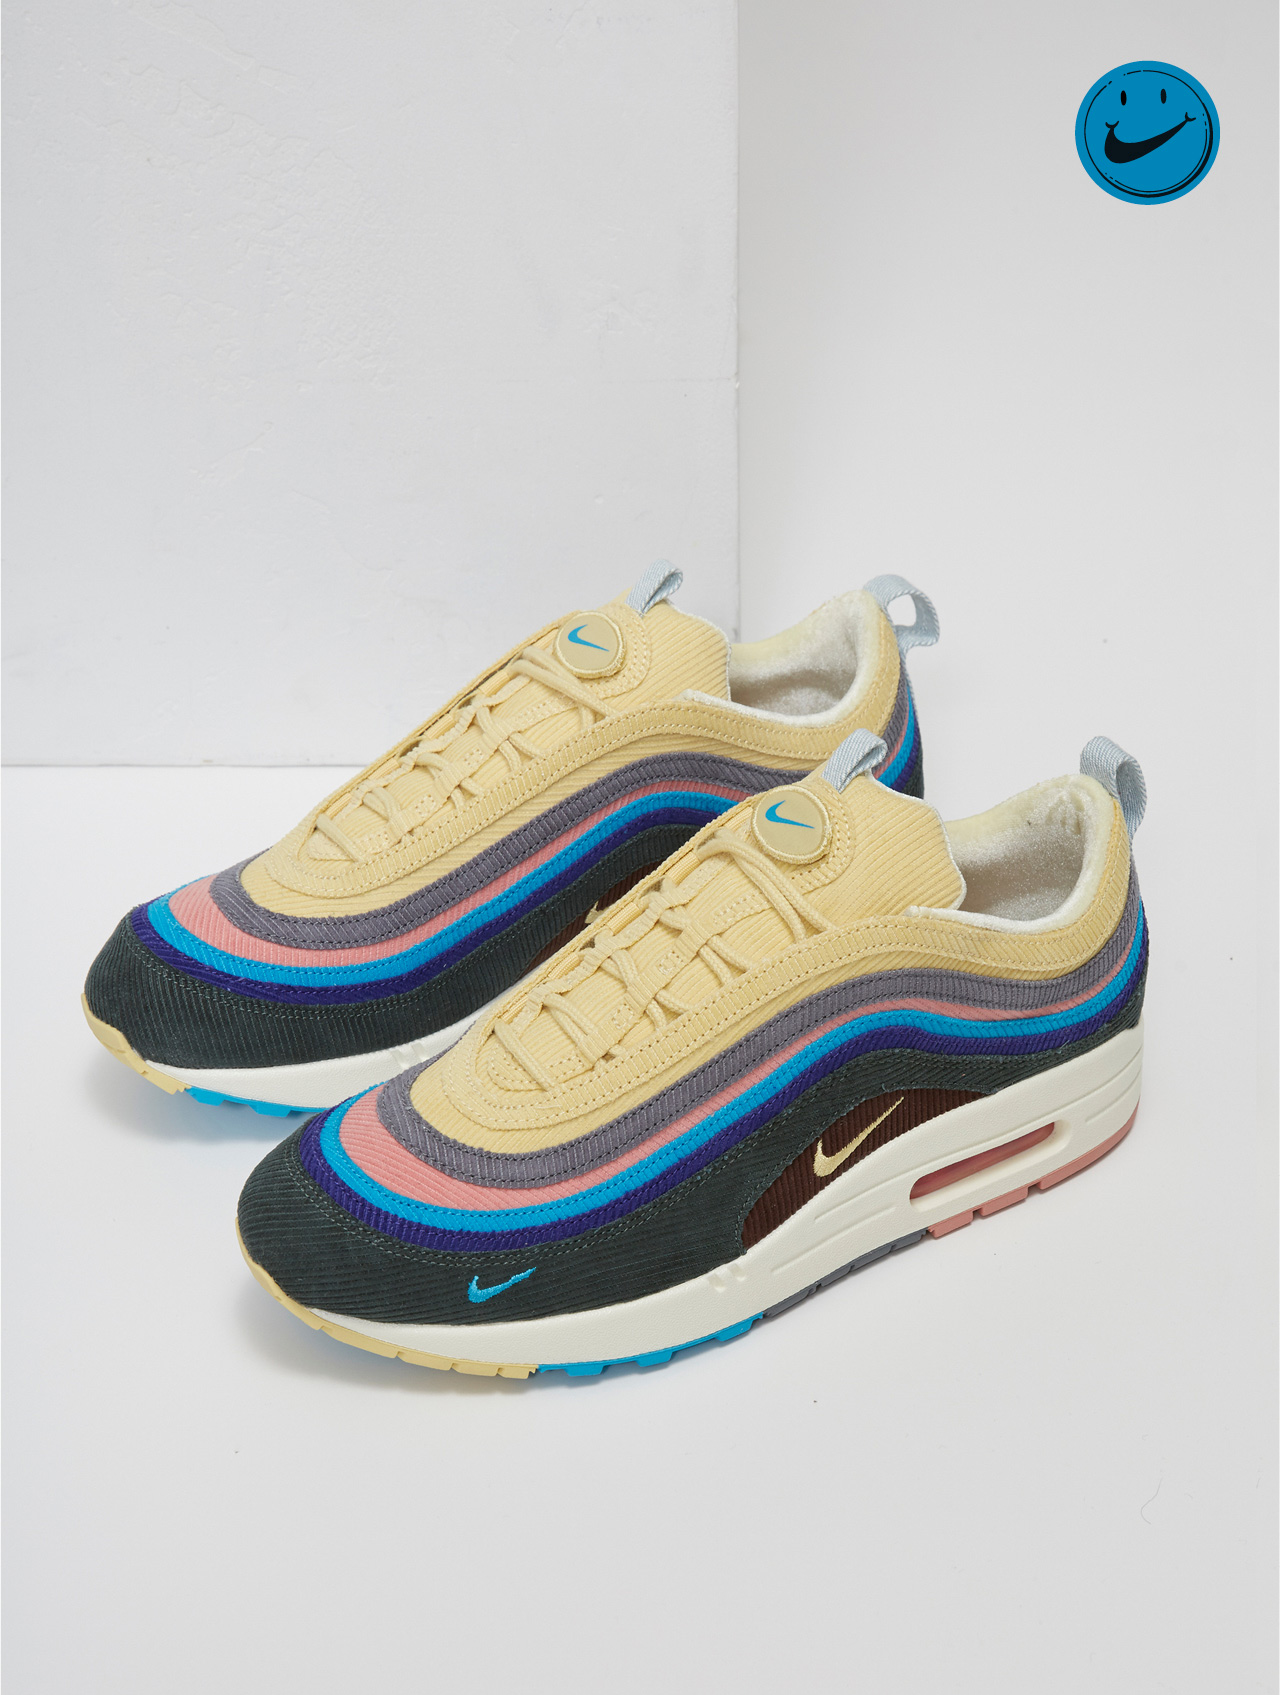 Nike Air Max 1/97 by Sean Wotherspoon